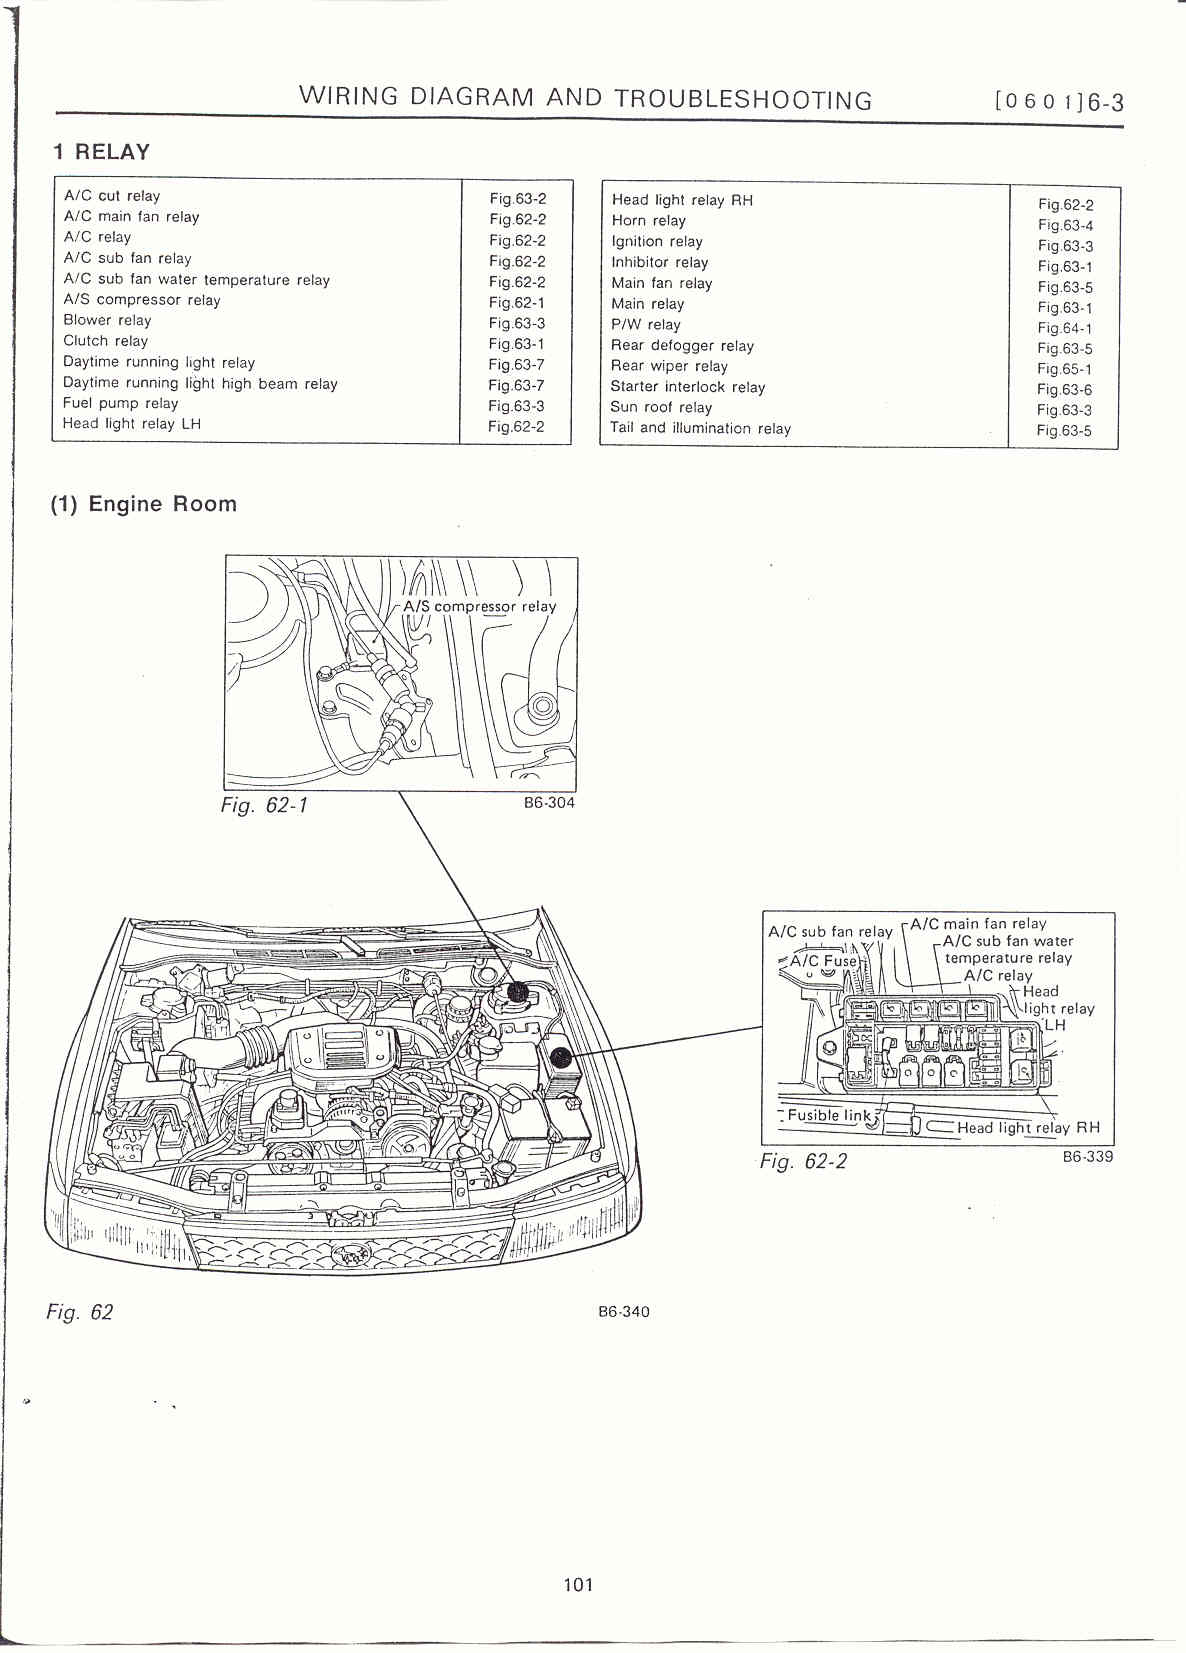 daihatsu cruise control diagram subaru    cruise       control       diagram    24h schemes  subaru    cruise       control       diagram    24h schemes